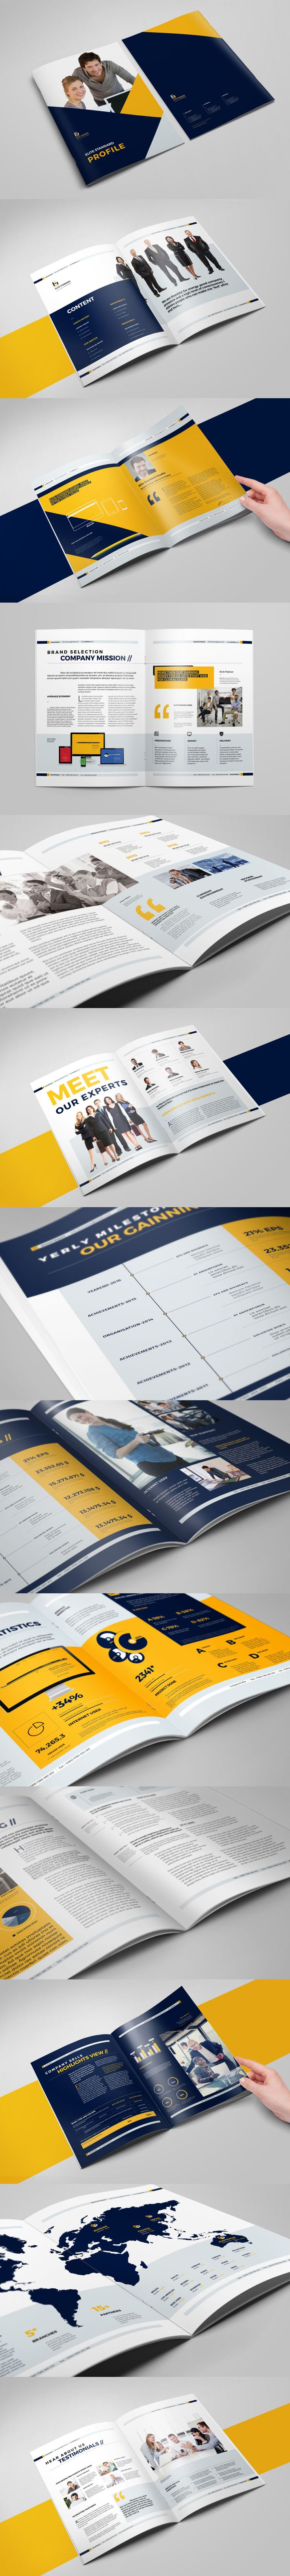 Business Brochure Template InDesign INDD - 24 Pages, A4 and US Letter Size